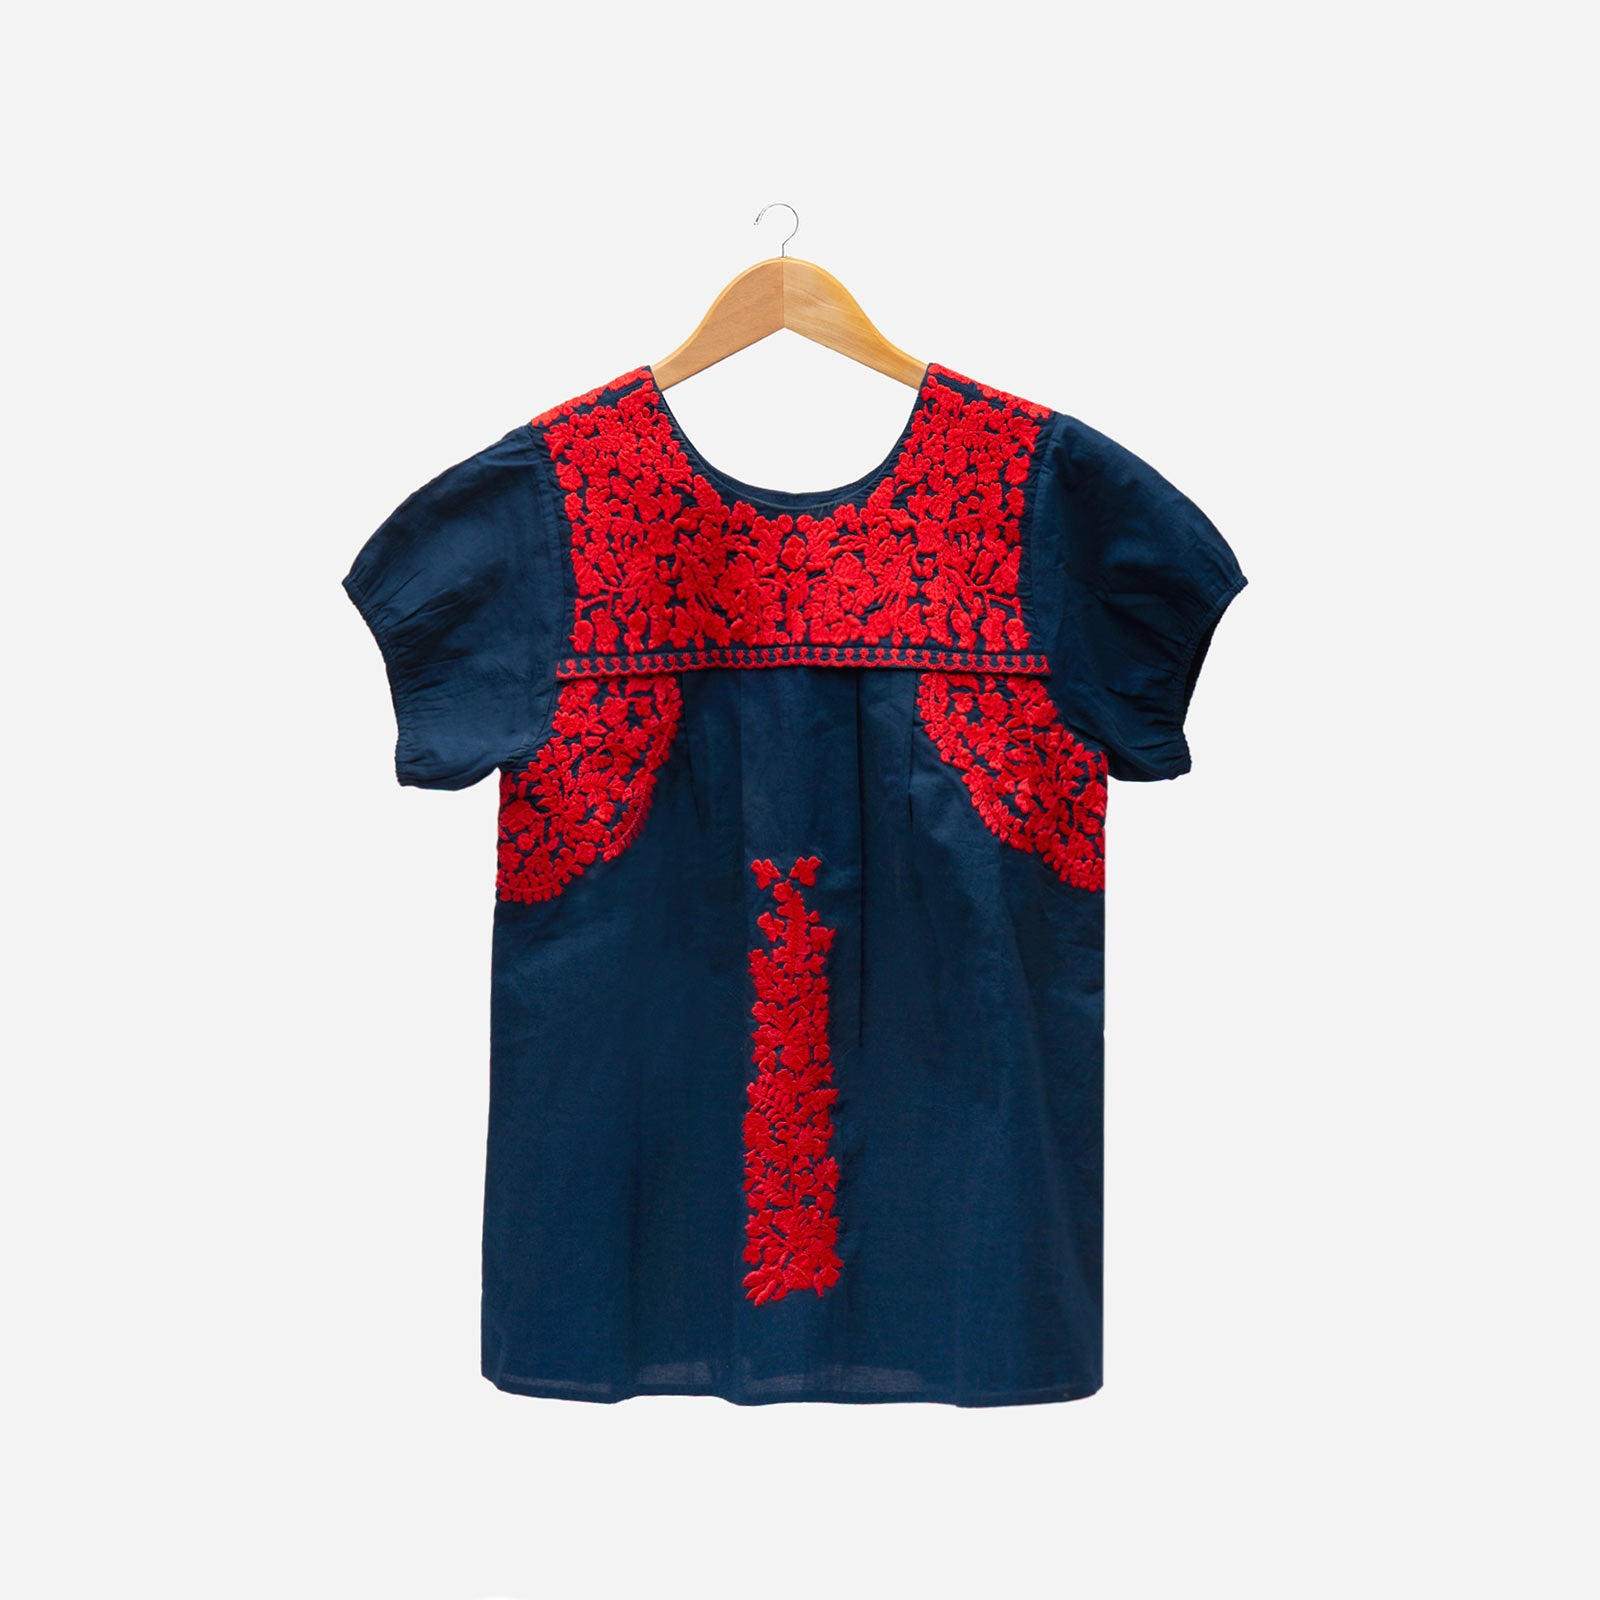 Floral Embroidered Lace Top Navy Red - Frances Valentine